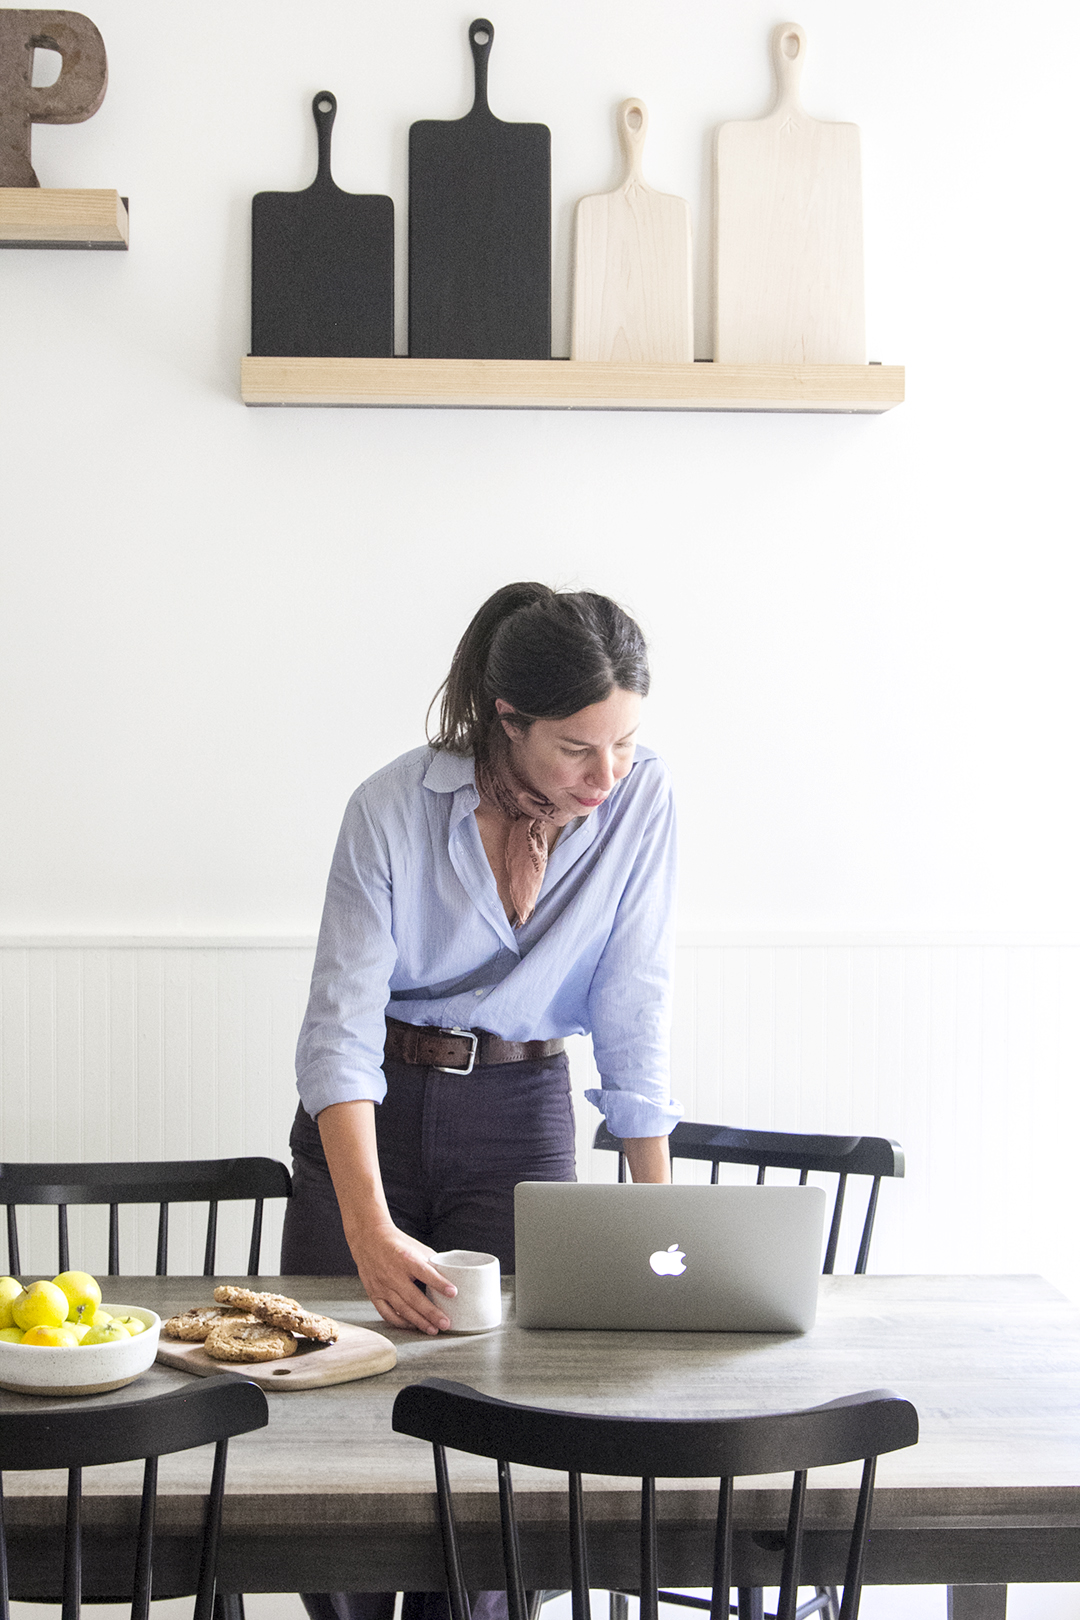 Scaling a business that doesn't rely on you by Poppy's Catering founder, Jamie Schmoes Erickson on The Lifestyle Edit